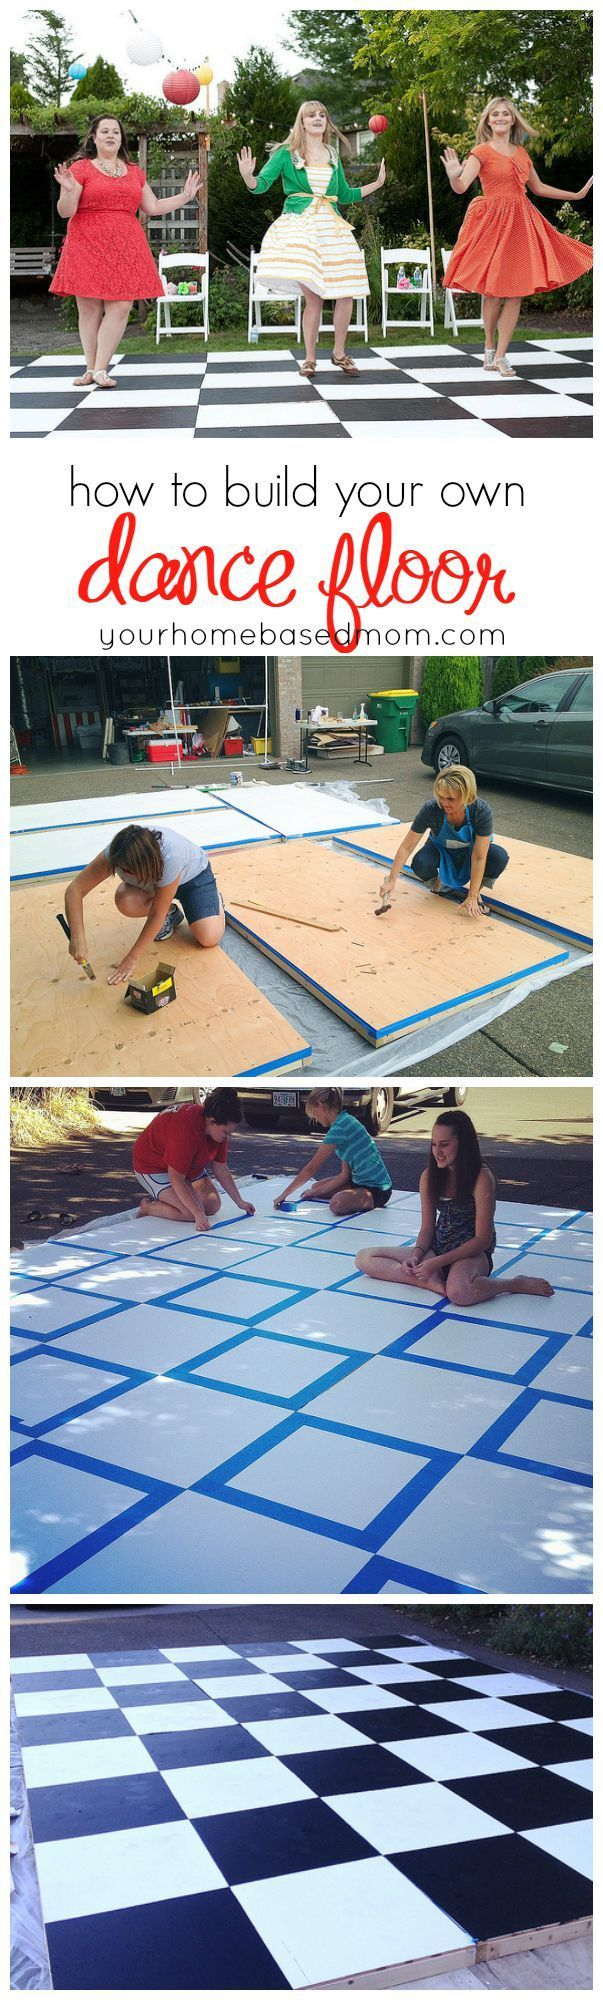 Hey, Let\u0027s Make a Dance Floor! Only $24 plus cost of paint for ...